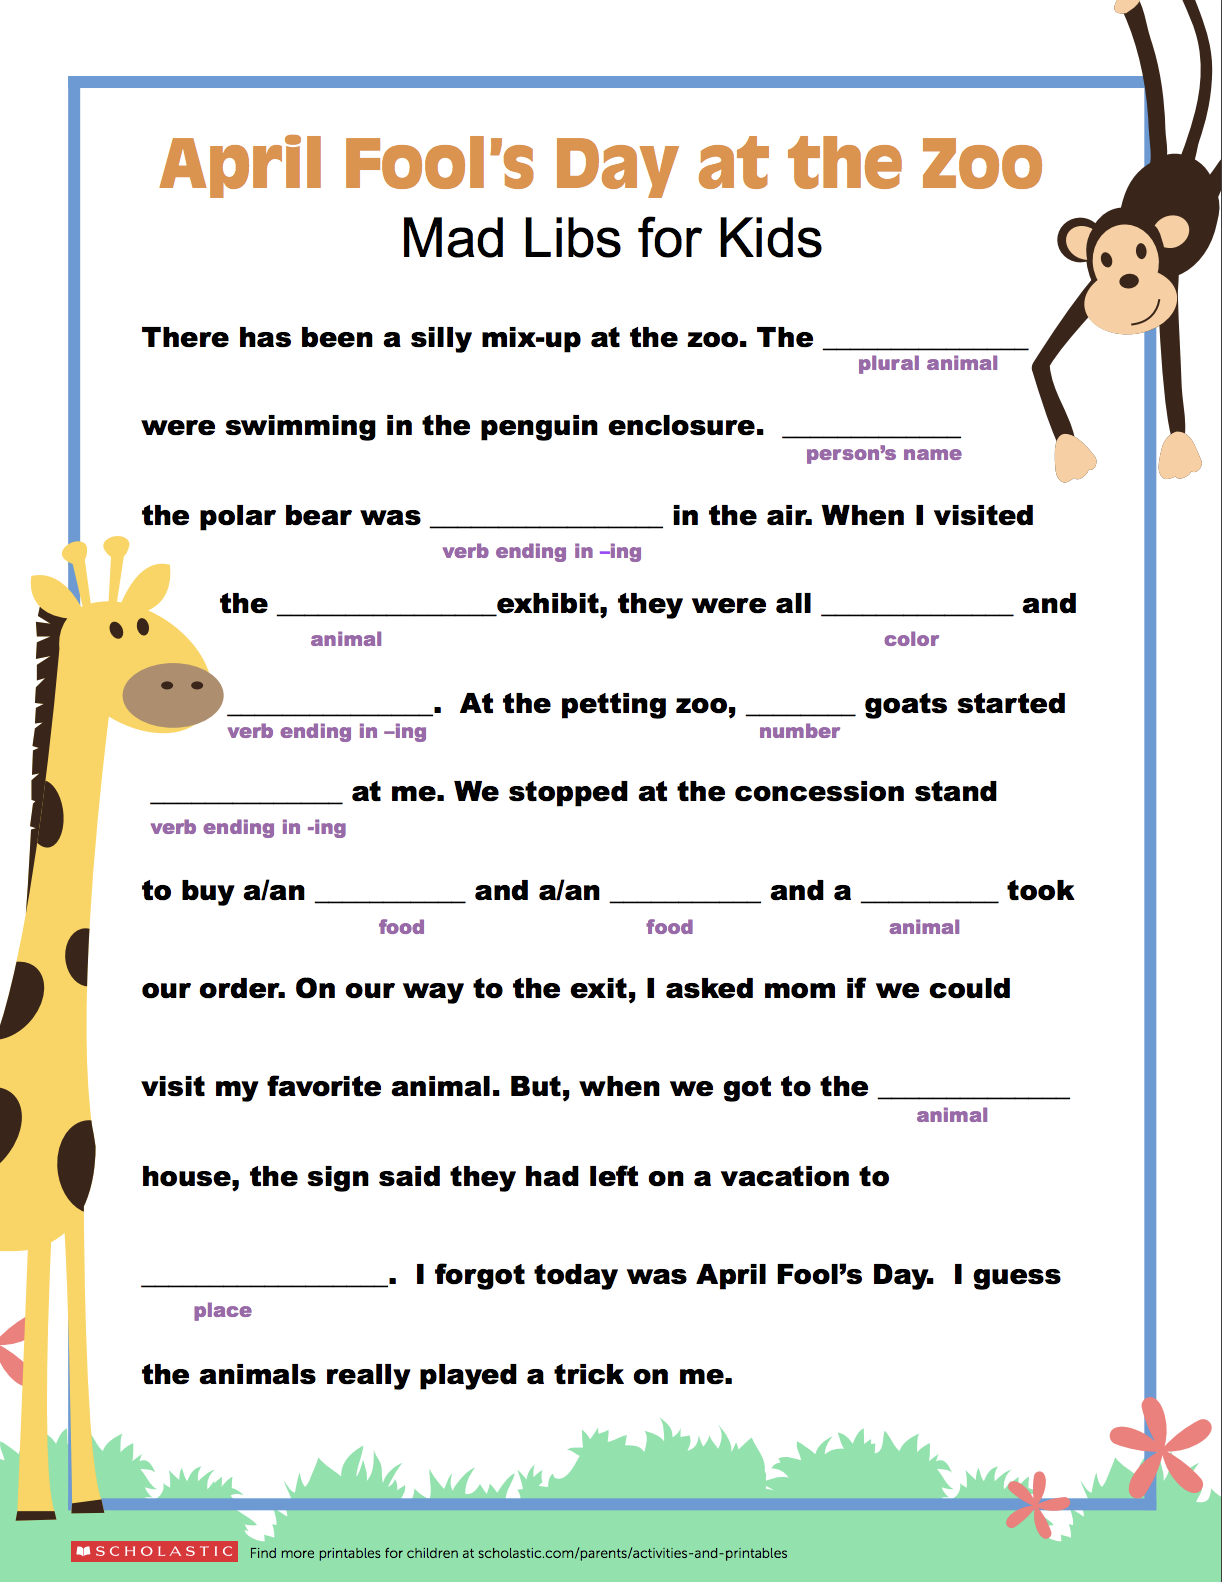 Fill In An April Fool S Day Mad Libs